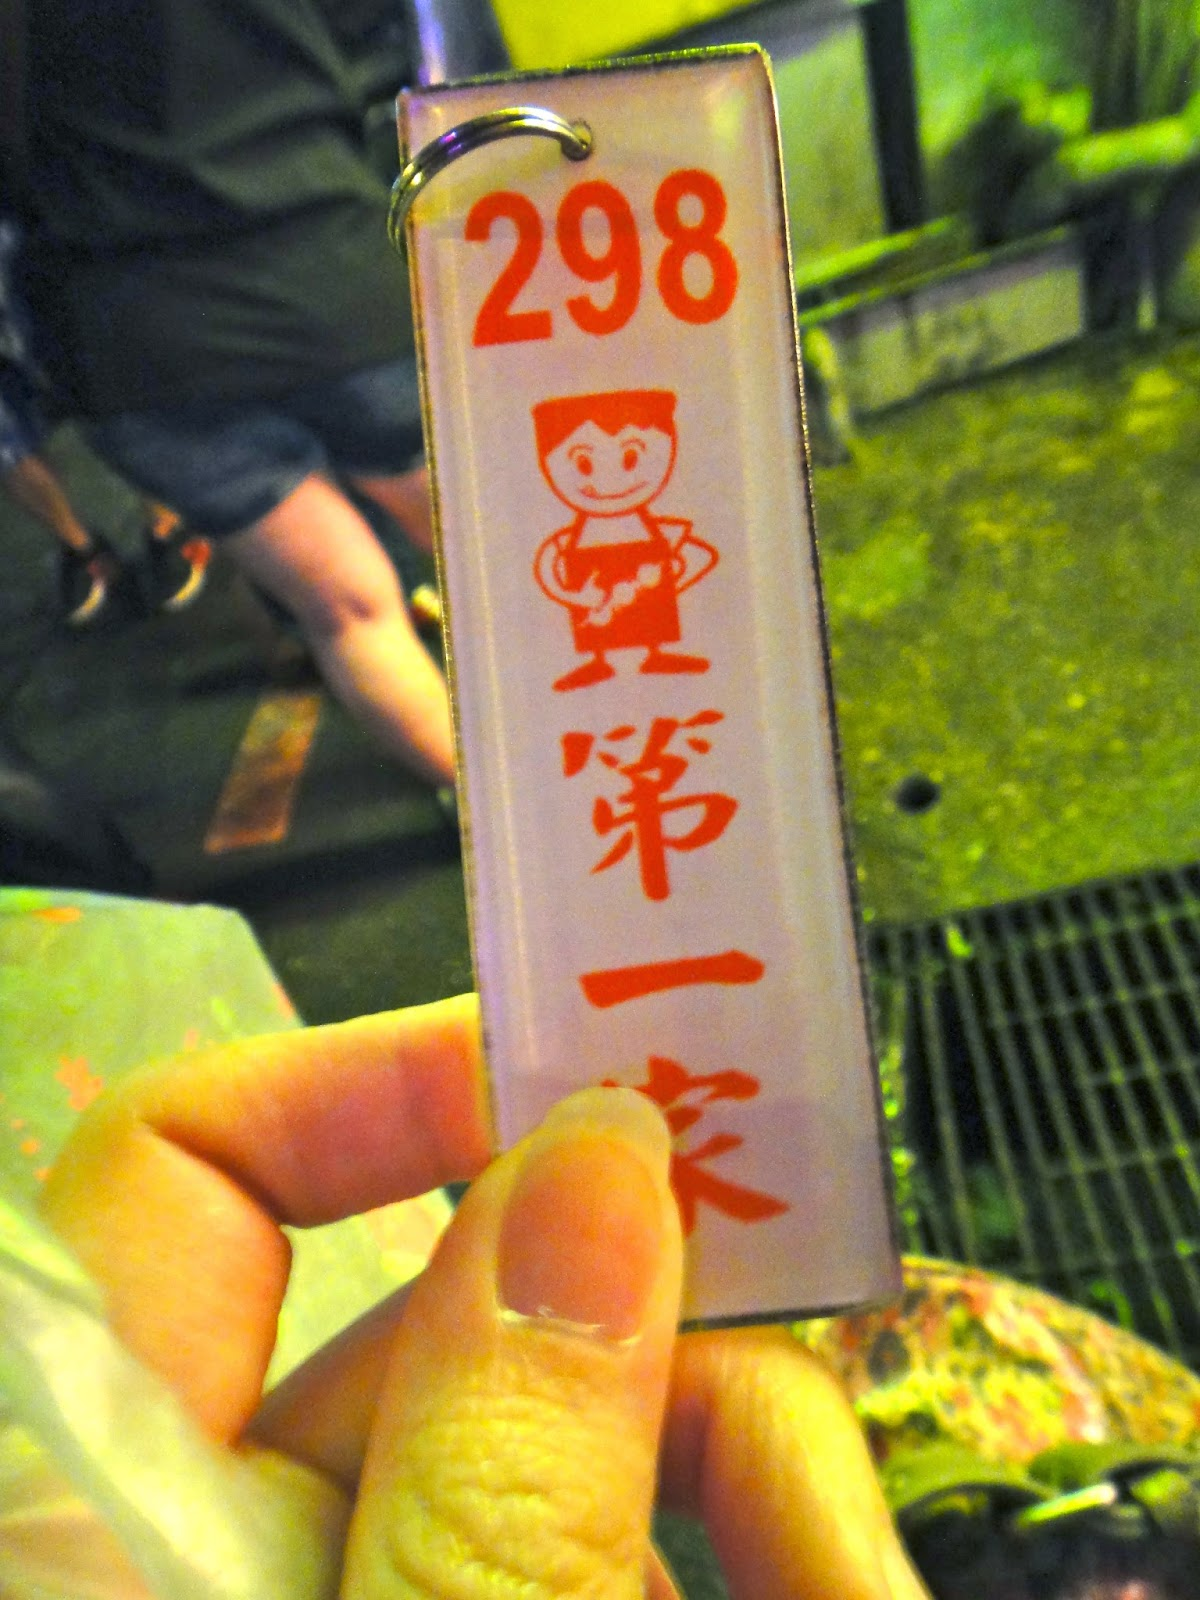 Queue tag for grilled sticks at Zhiqiang Night Market